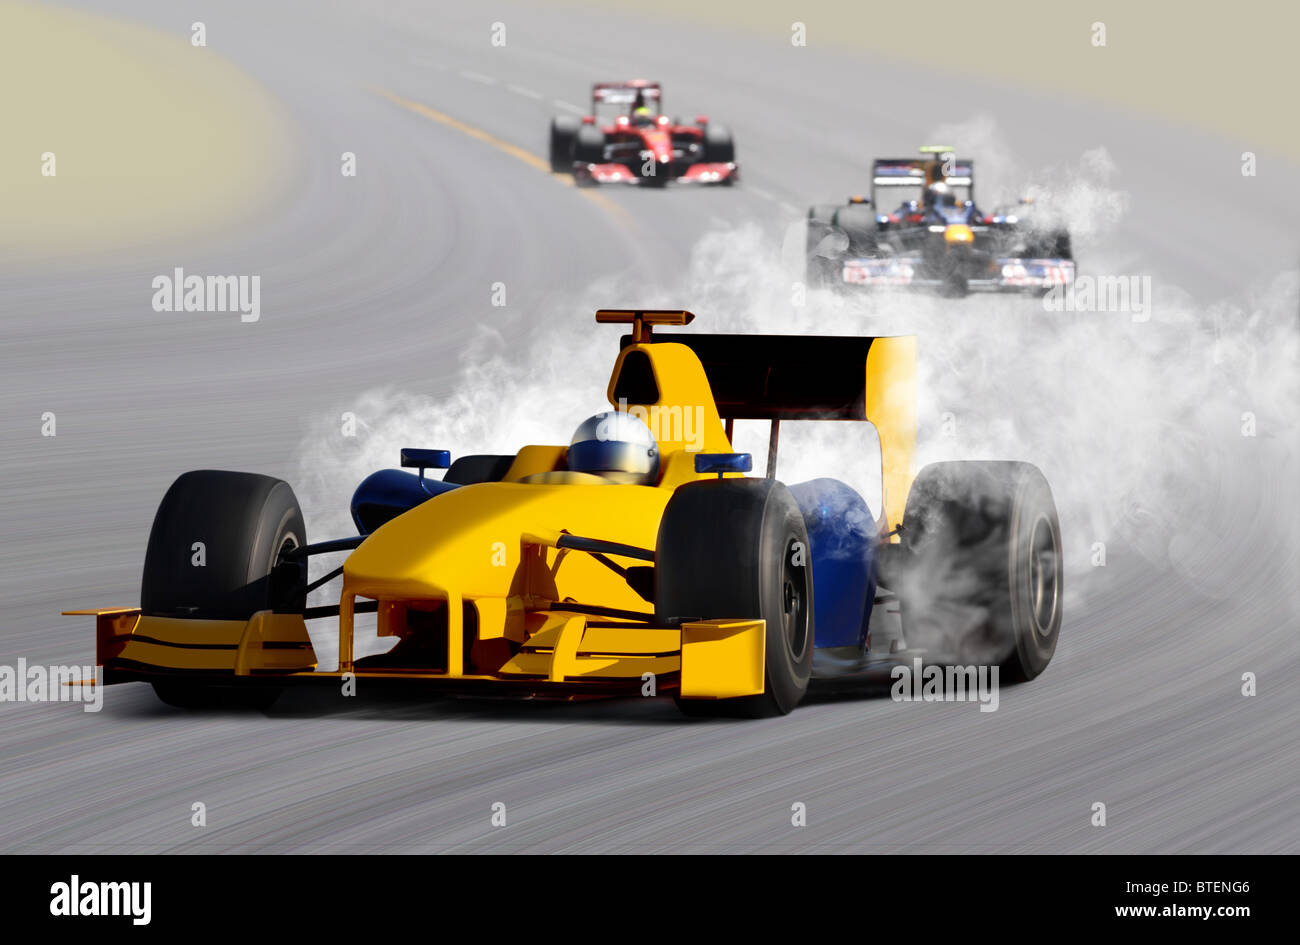 breakdown of formula one race car on speed track - Stock Image